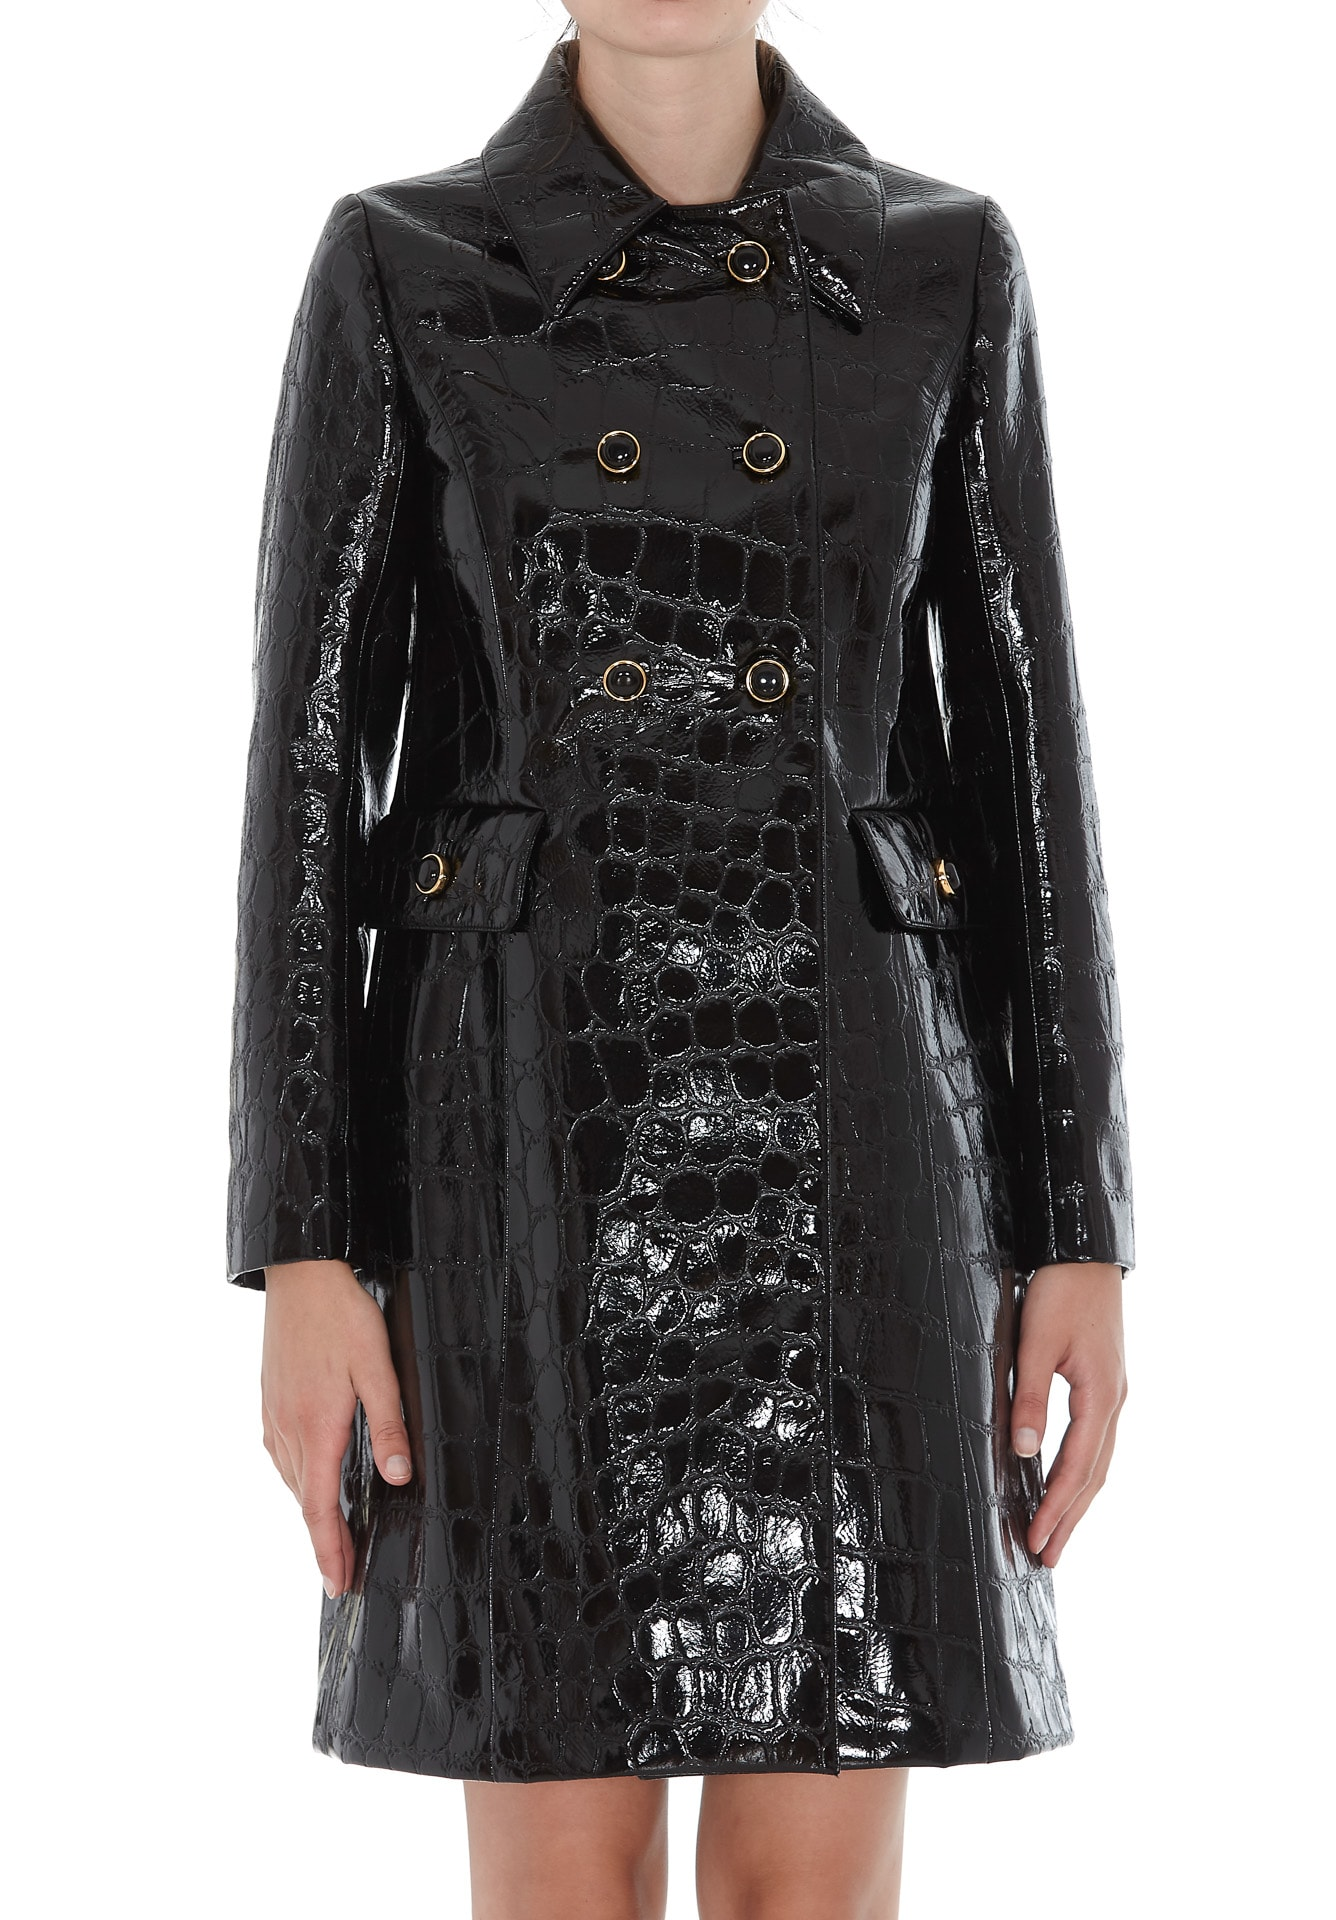 Miu Miu Lucid Effect Coat